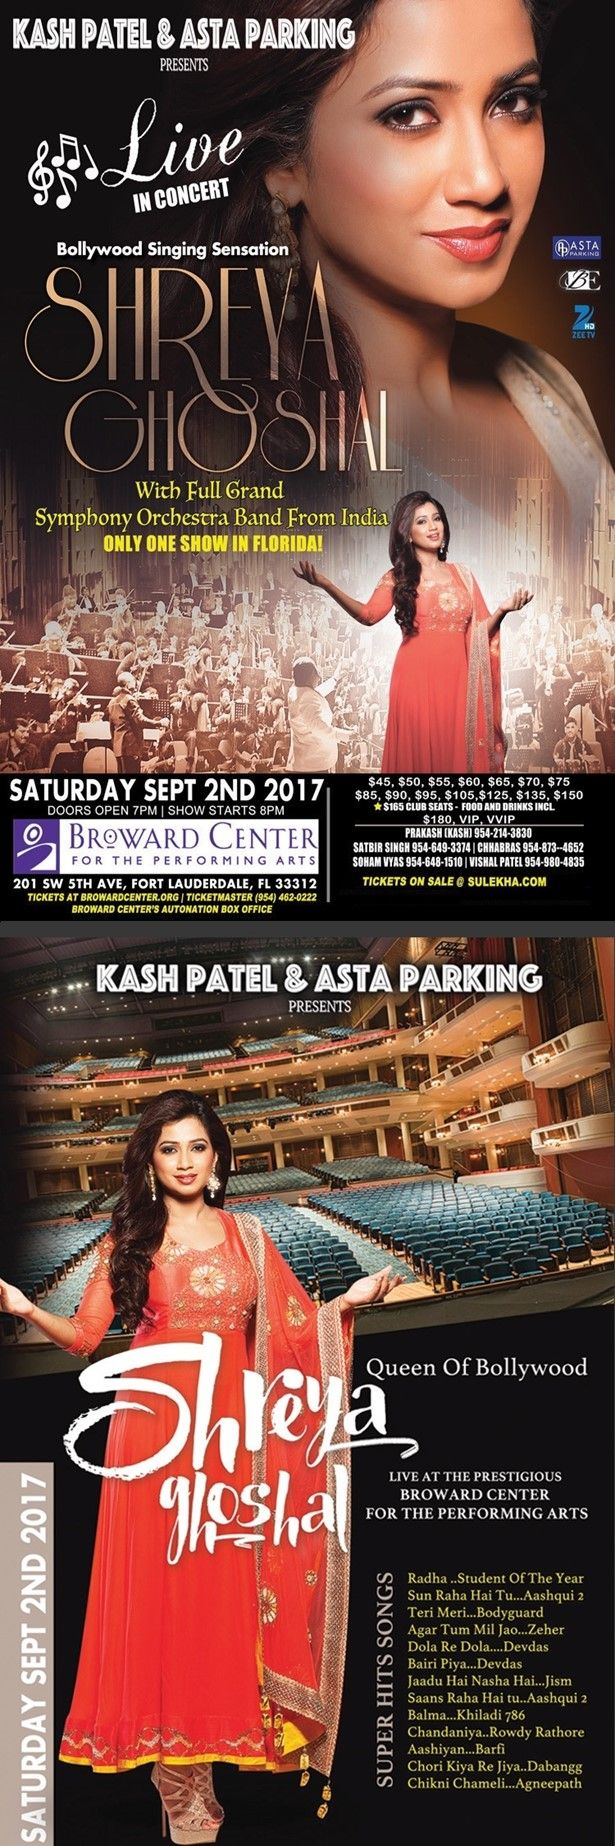 Shreya Ghoshal Live In Florida